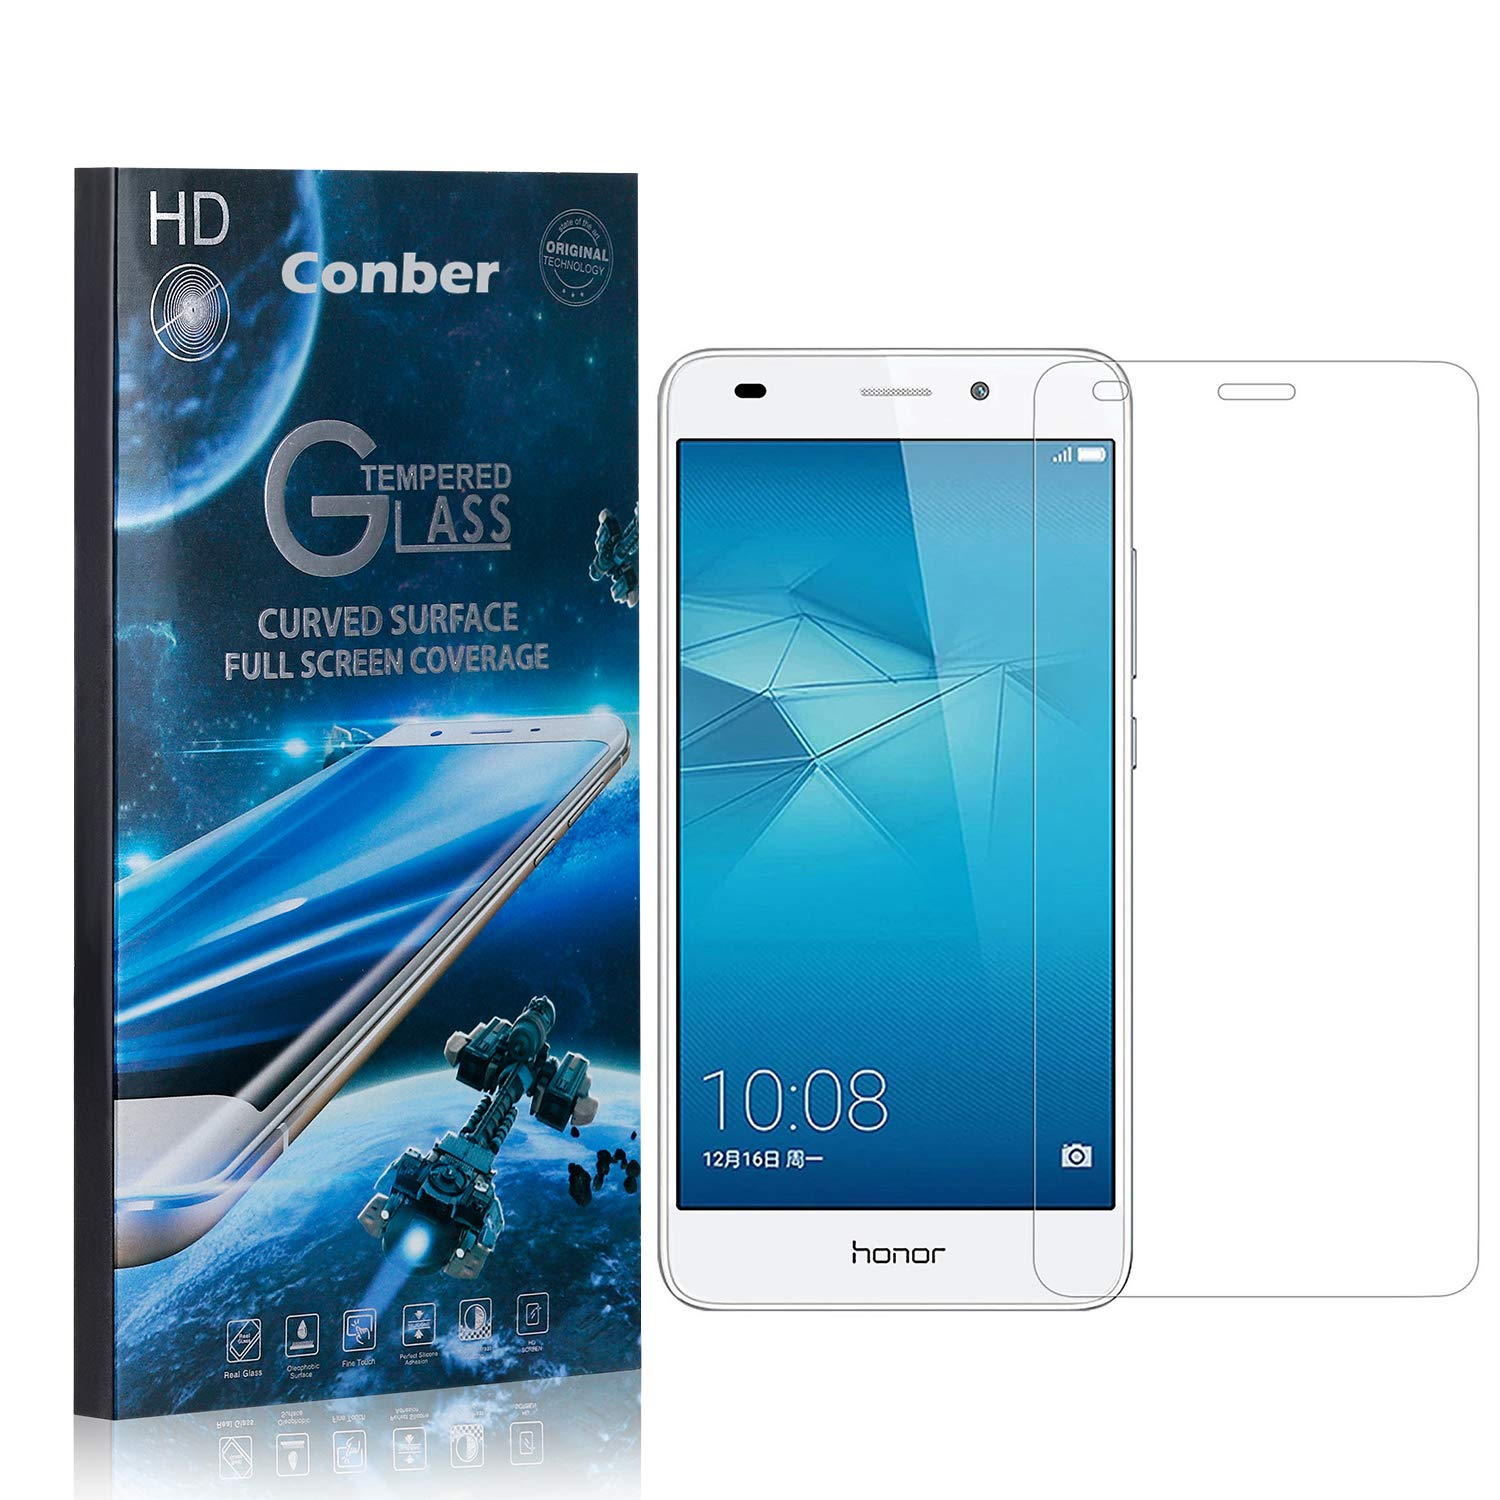 Conber Super Special SALE held 1 Pack Screen Protector Scratch-R Honor 5C Lowest price challenge Huawei for